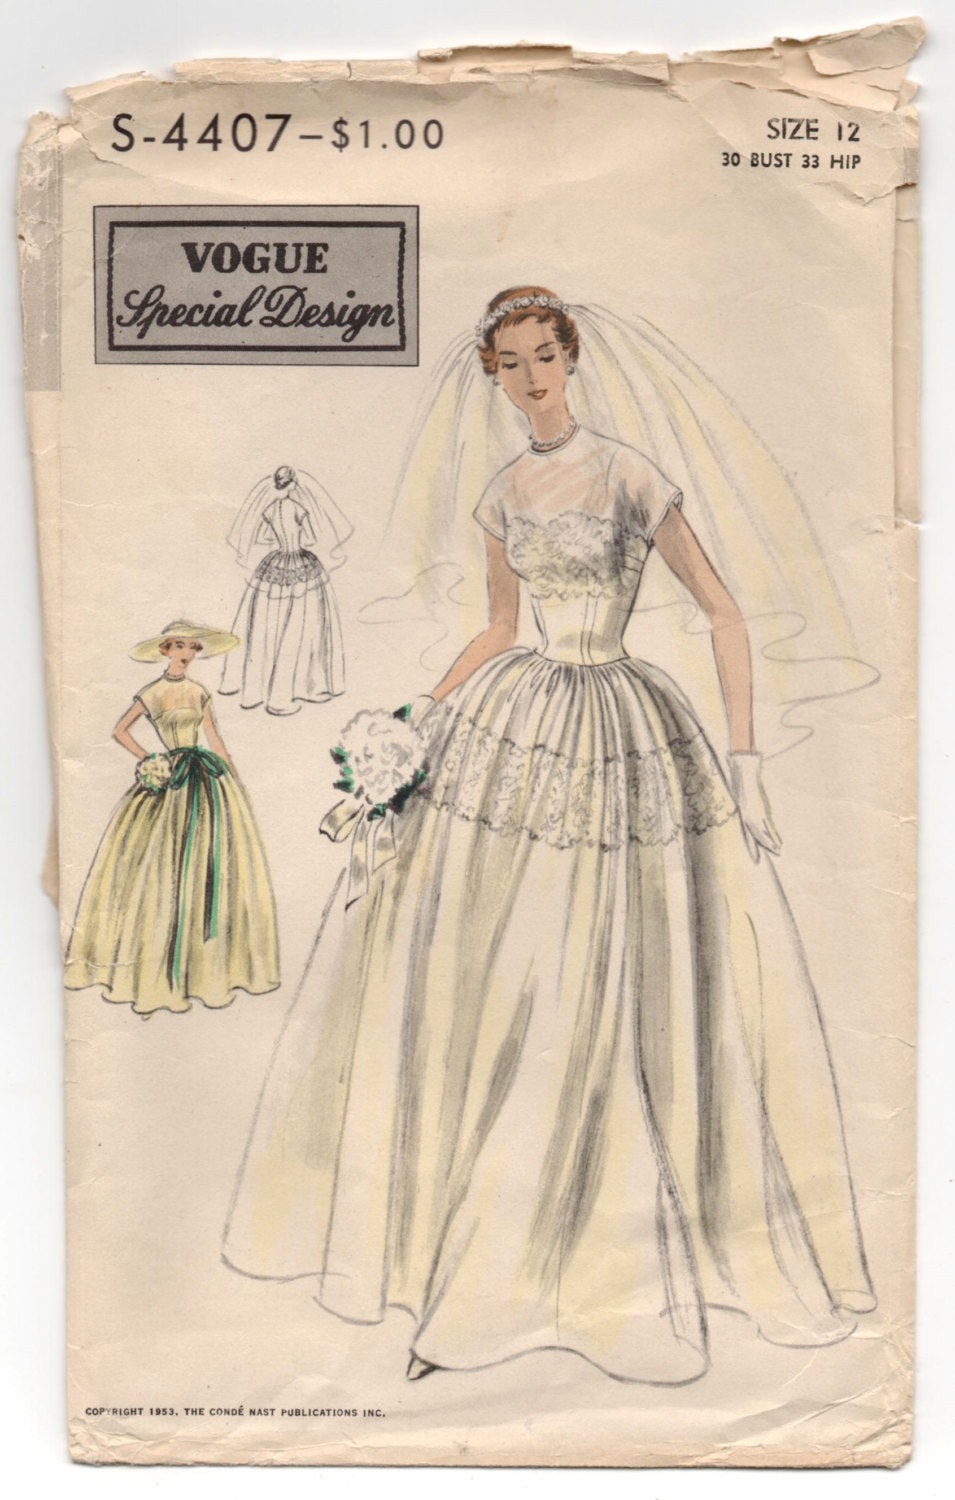 1950's Vogue Wedding or Evening Dress with Cap sleeves Pattern - Bust 30